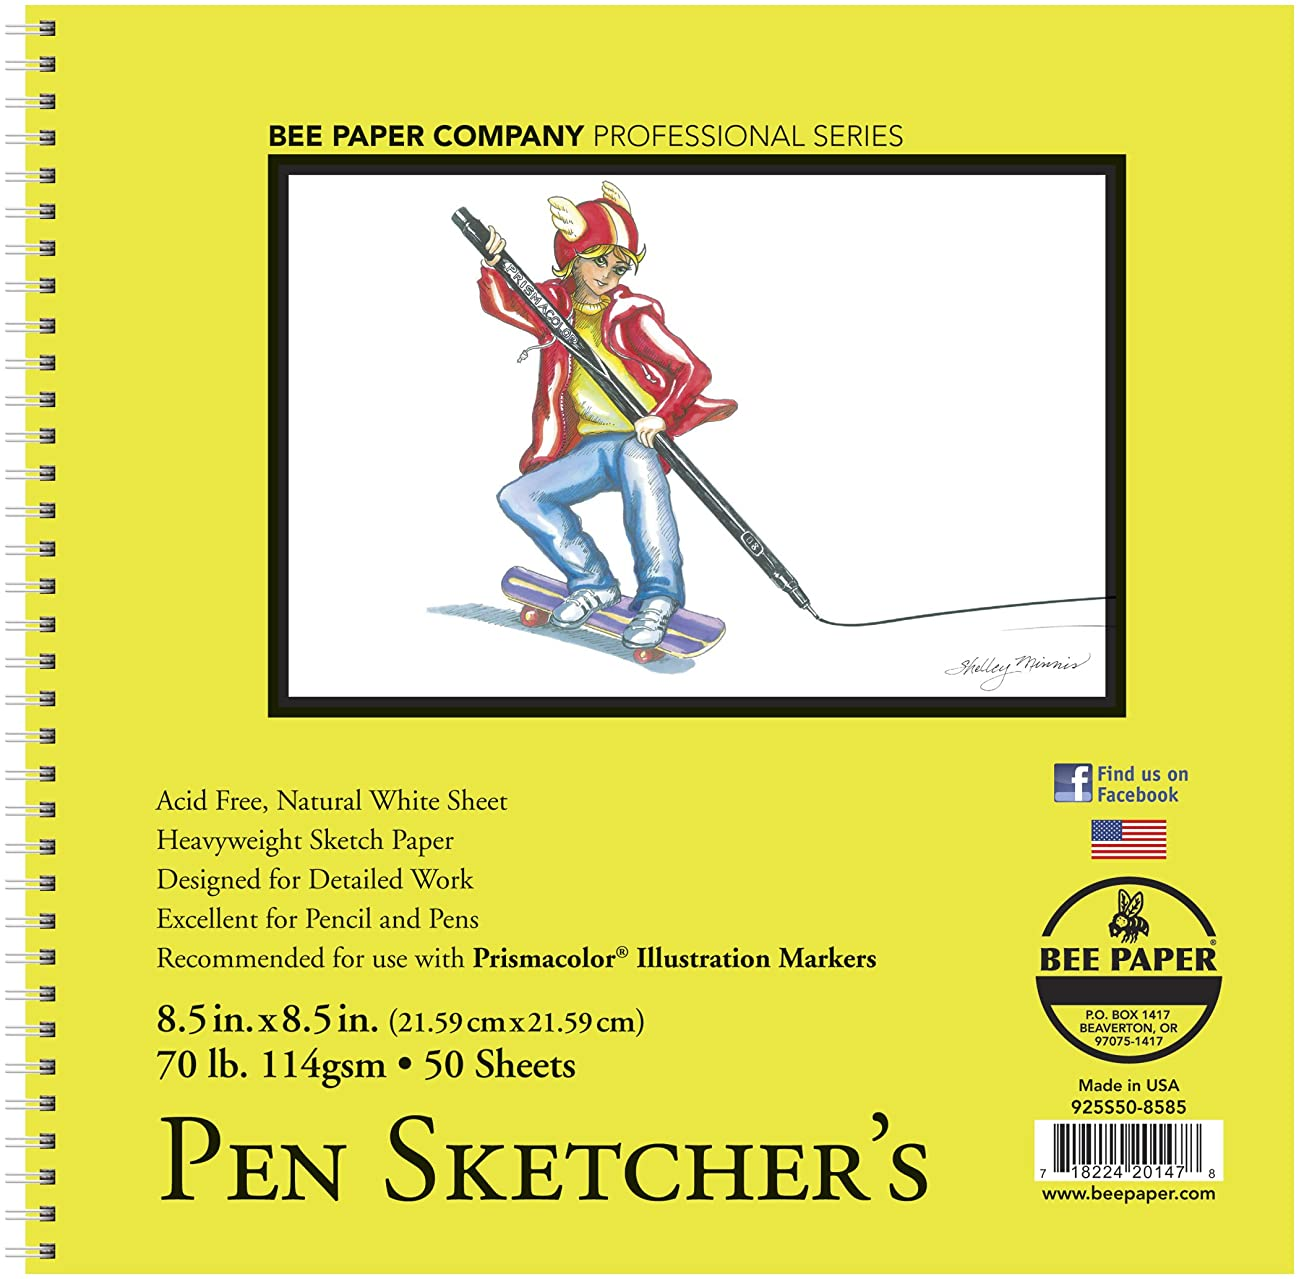 Bee Paper Company Pen Sketchers Pad, 8.5 by 8.5-Inch